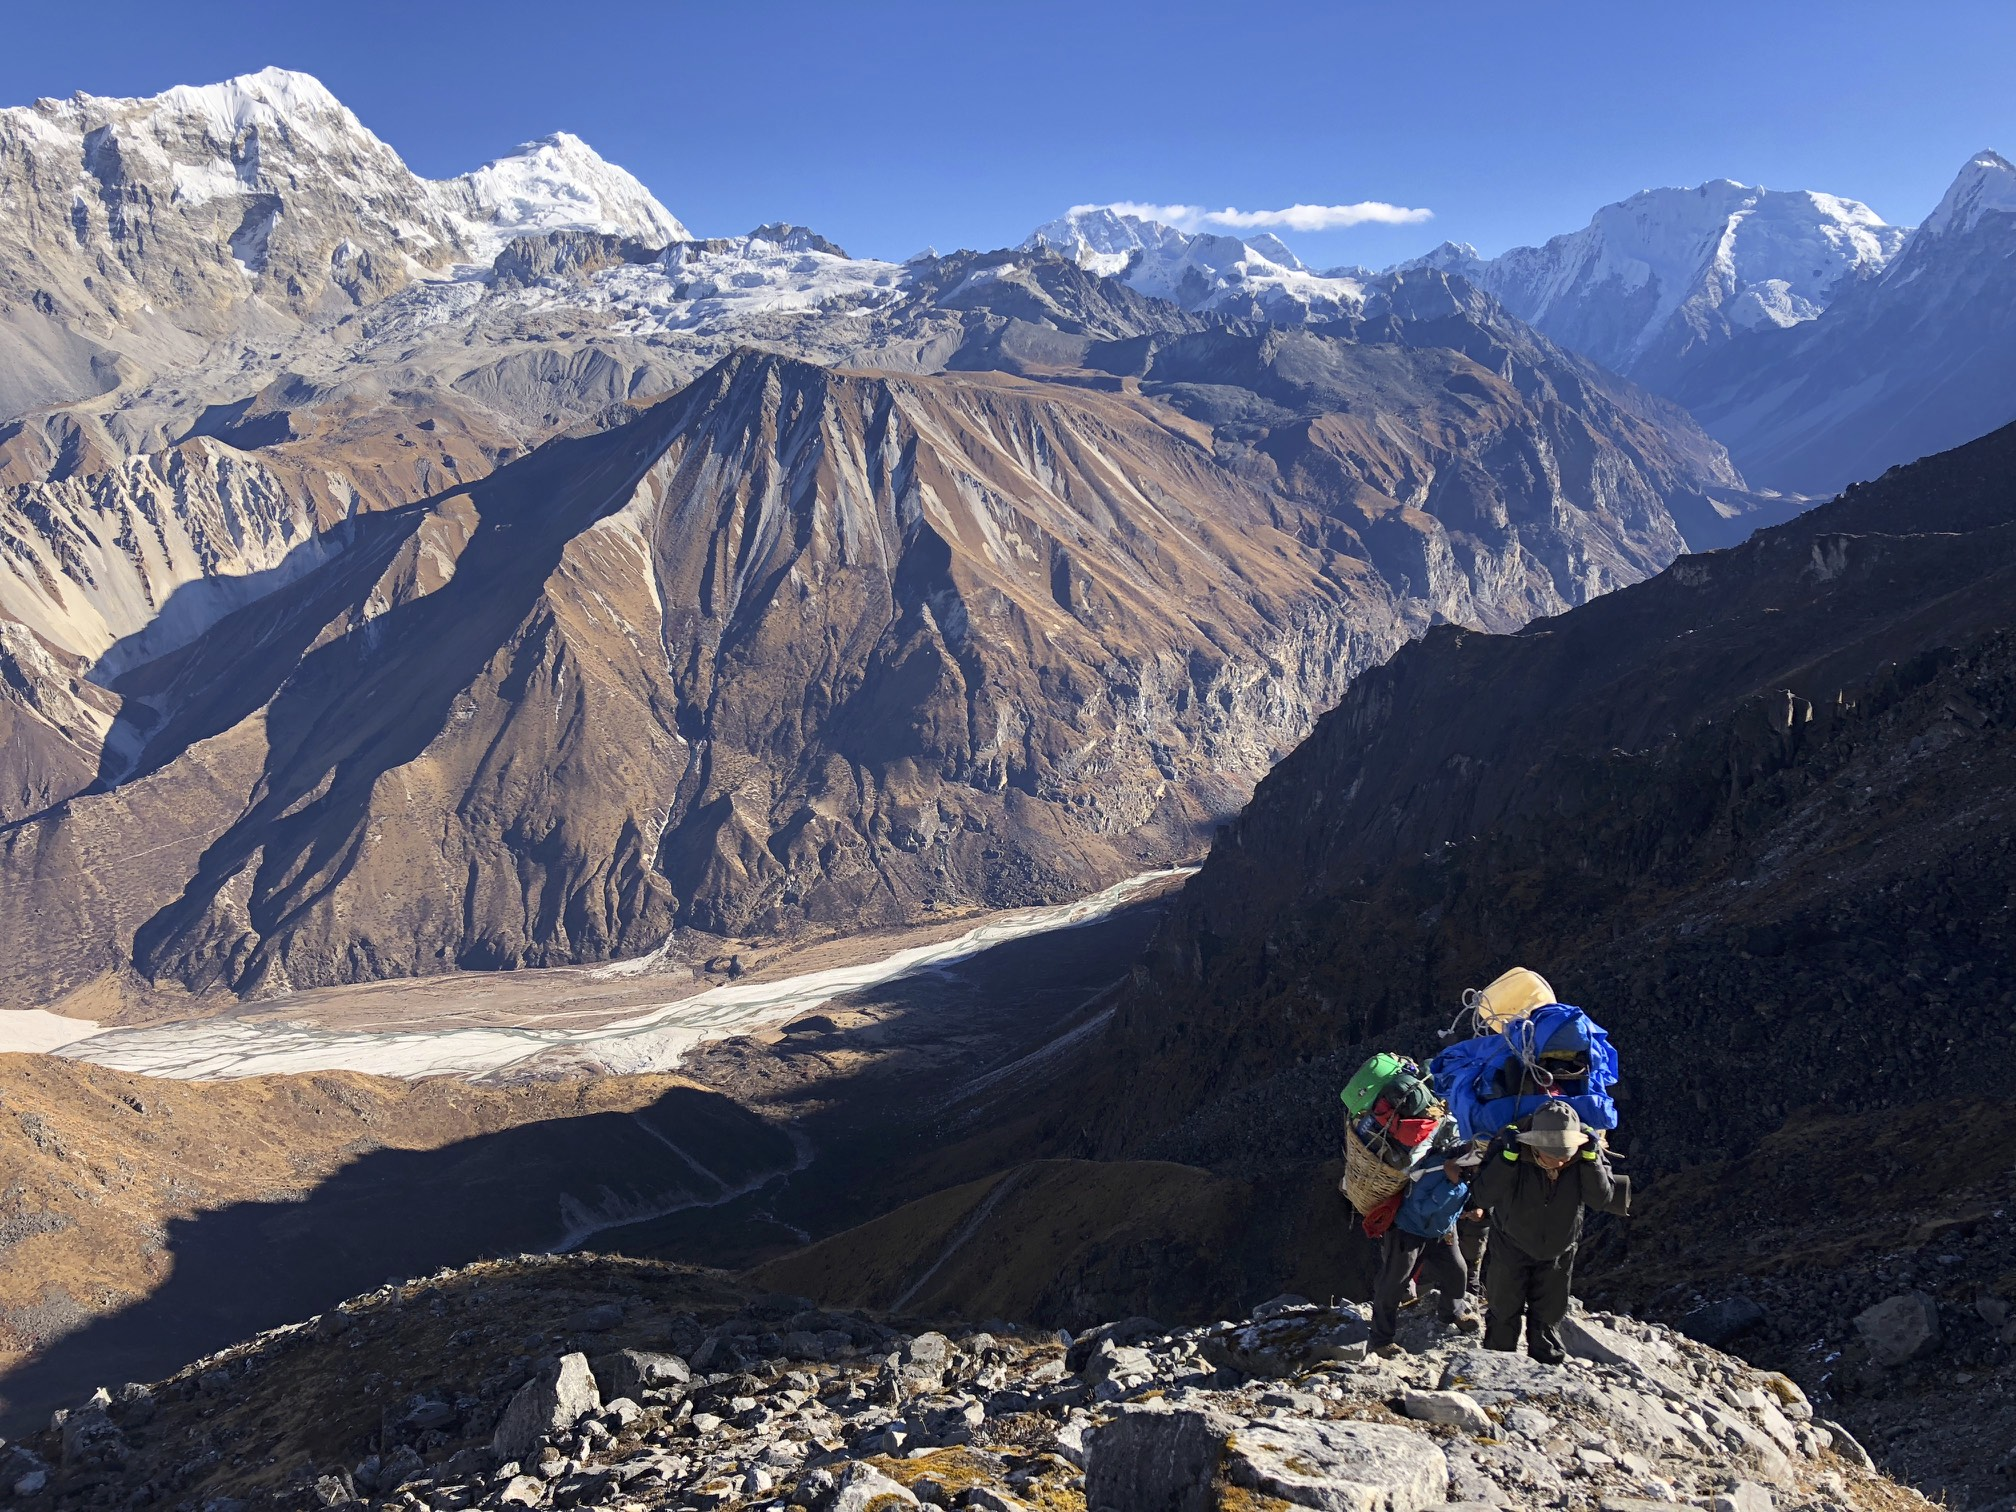 Climbing to the Ganjala Pass with the Langtang Velley below.